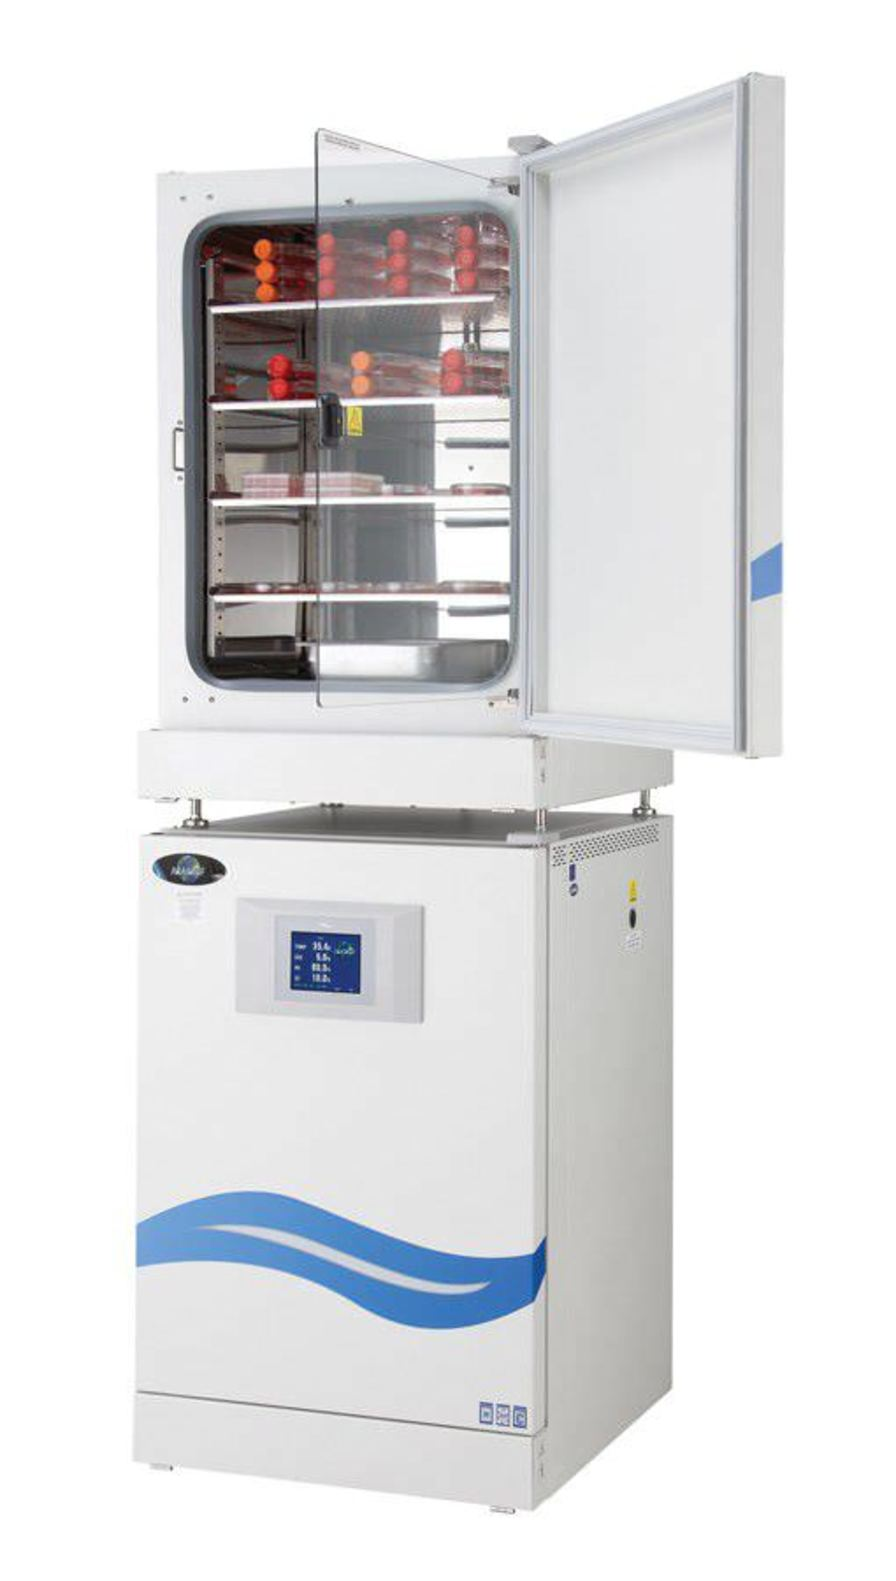 CO2 laboratory incubator / stainless steel 200 L | In-VitroCell ES NU-5841 Nuaire